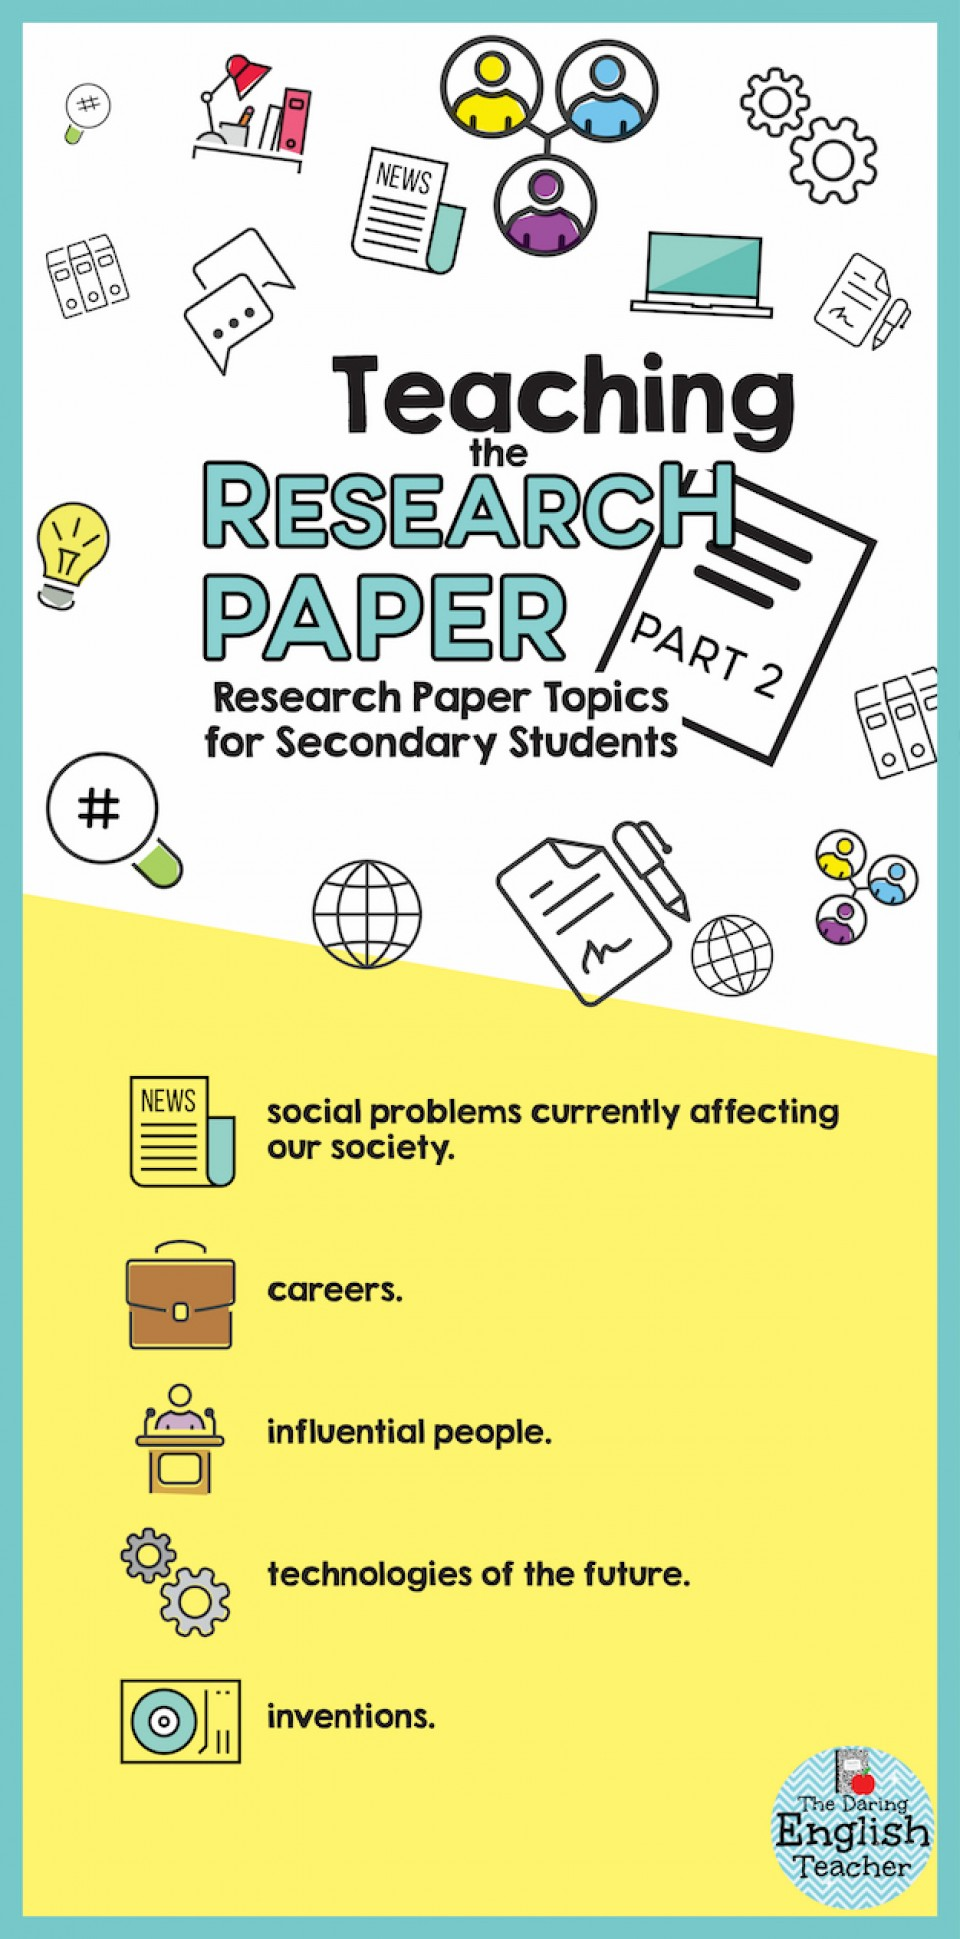 020 Infographic2bp22b2 Research Paper Topic For Unusual A Topics In Developmental Psychology On Education Frankenstein 960